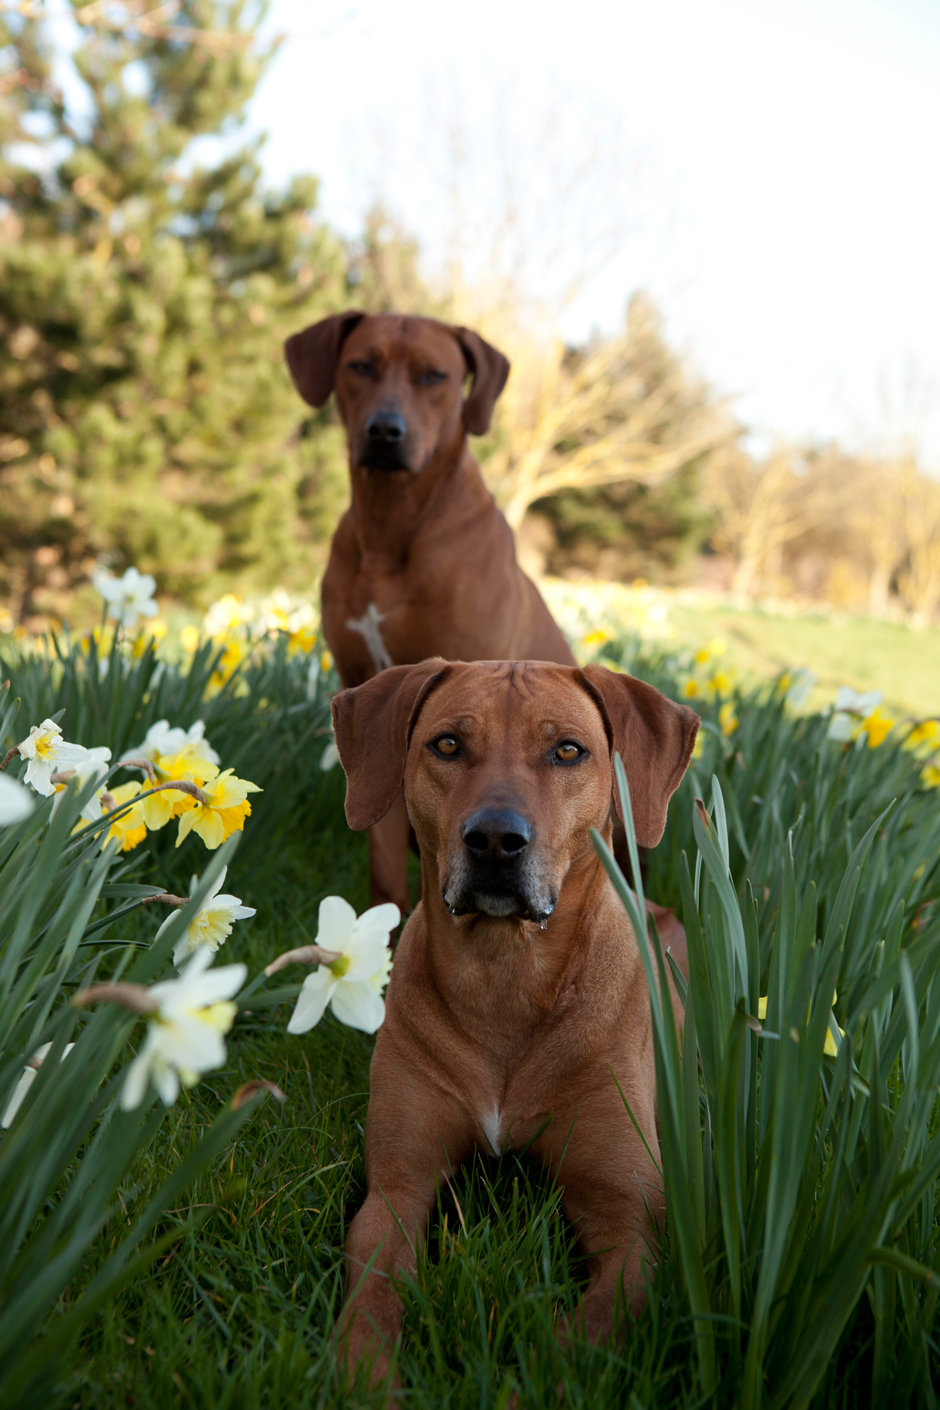 MG 9652 Spring has Sprung as they say...so heres some Rhodesian Ridgebacks & Daffodils